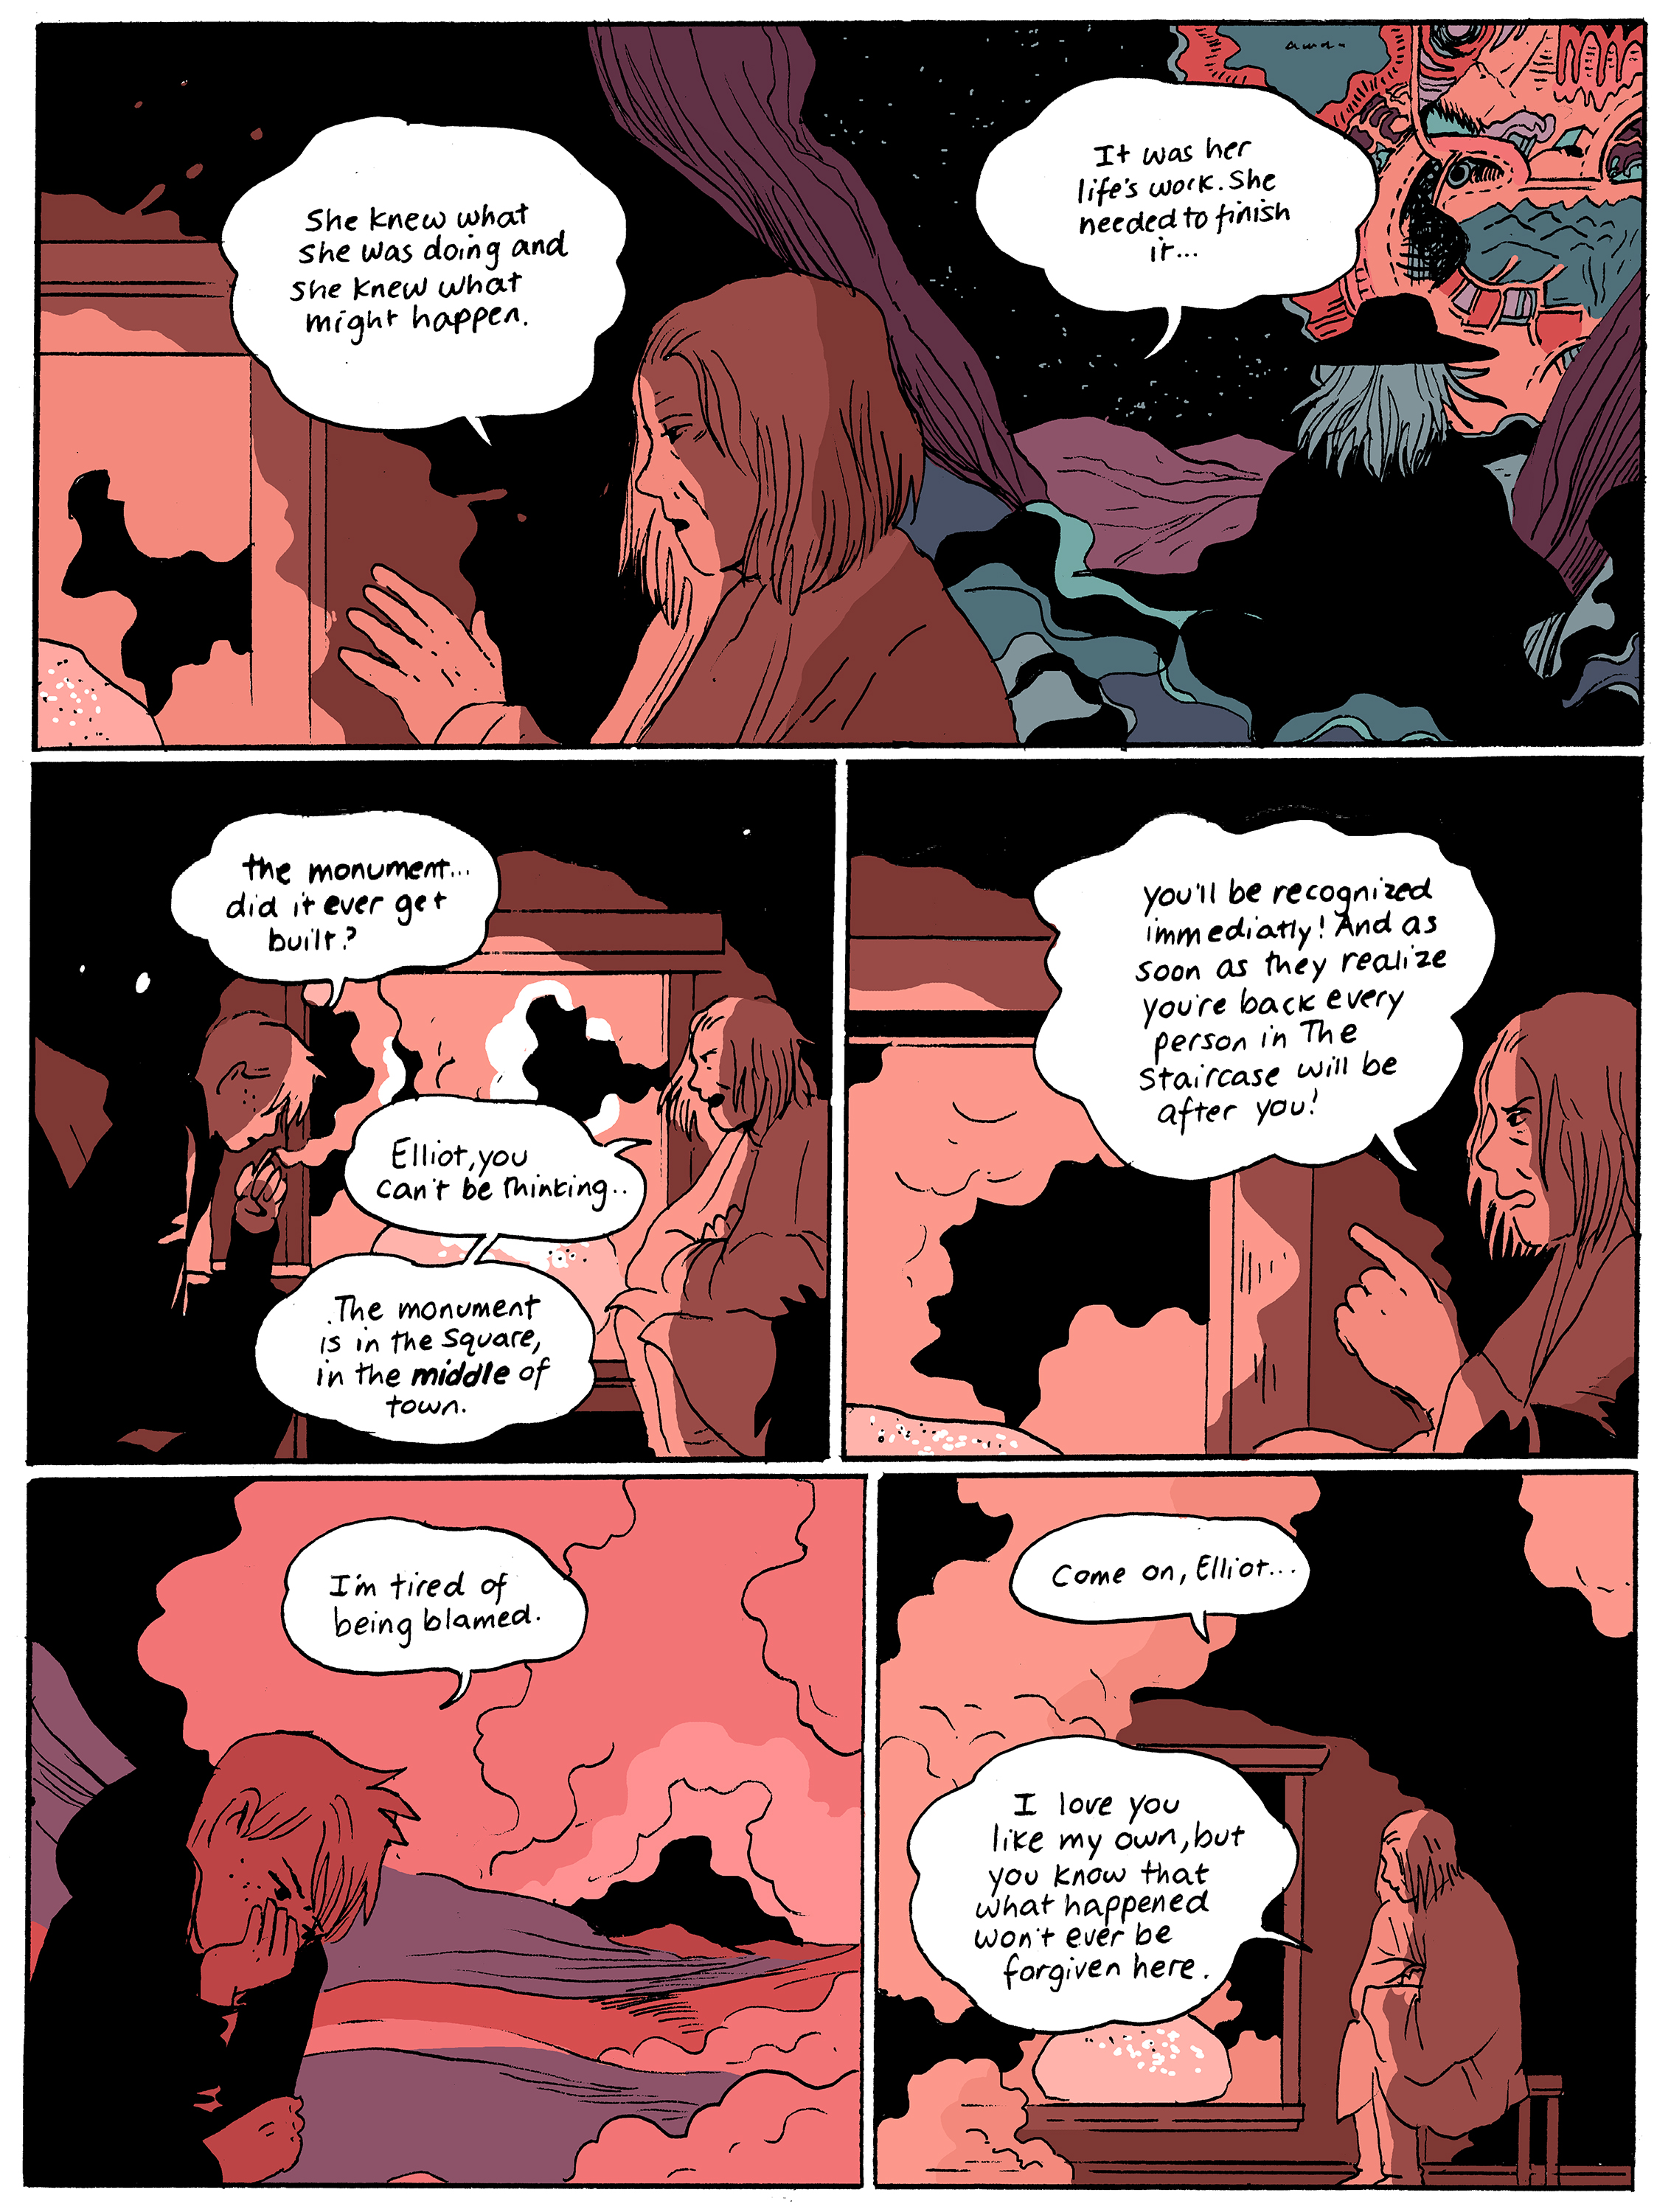 chapter17_page06.jpg